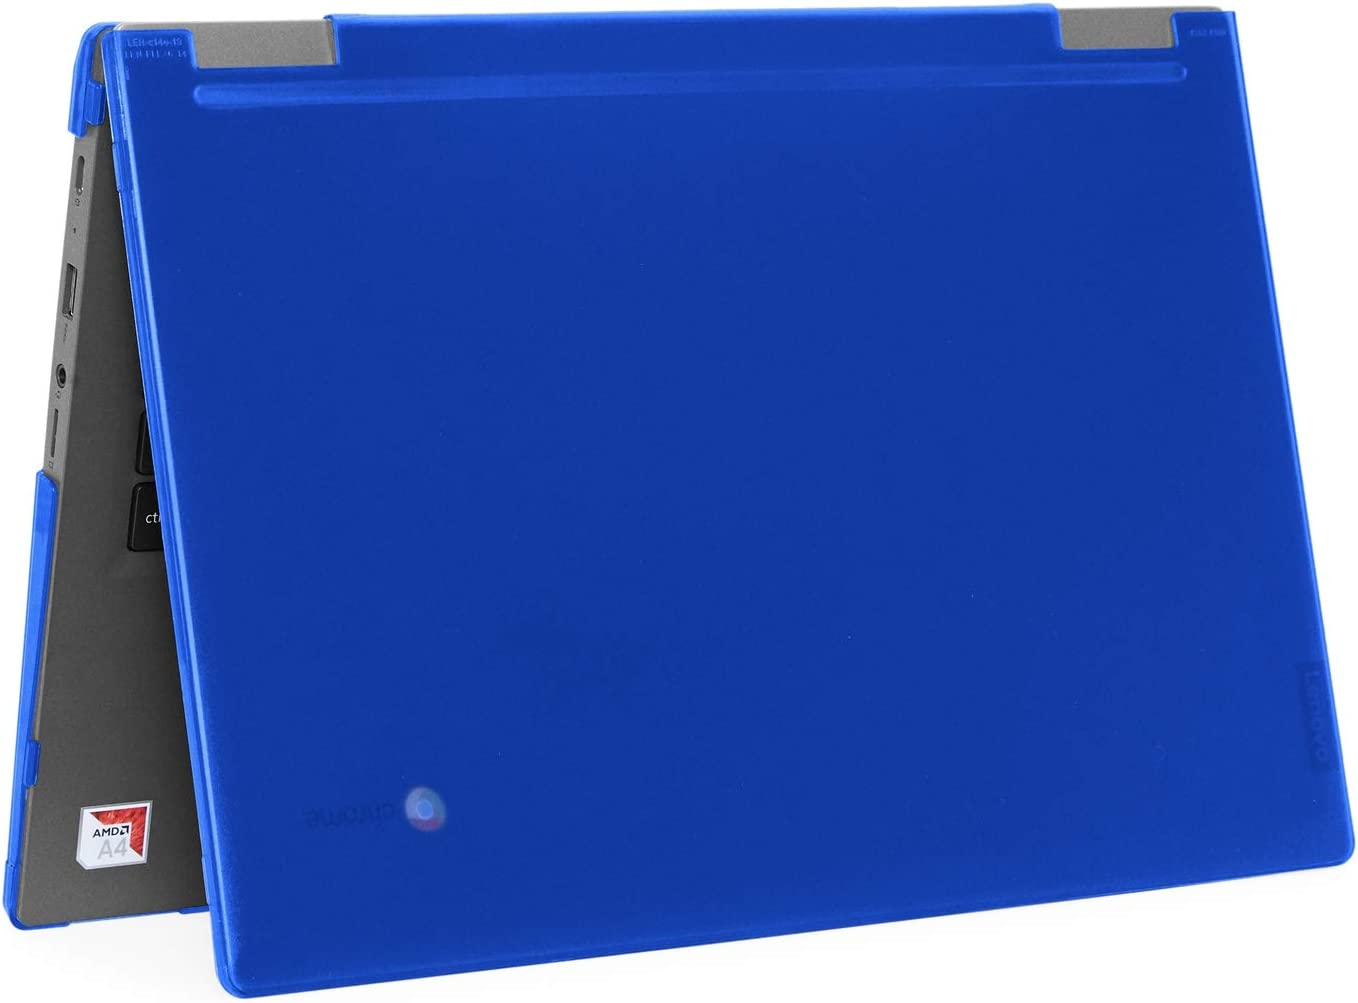 "mCover Hard Shell Case for 2019 14"" Lenovo 14e Series Chromebook Laptop (NOT Fitting Older 14"" Lenovo N42 / S330 and 11.6"" N22 / N23 / N24, etc Chromebook) (LEN-C14e Blue)"